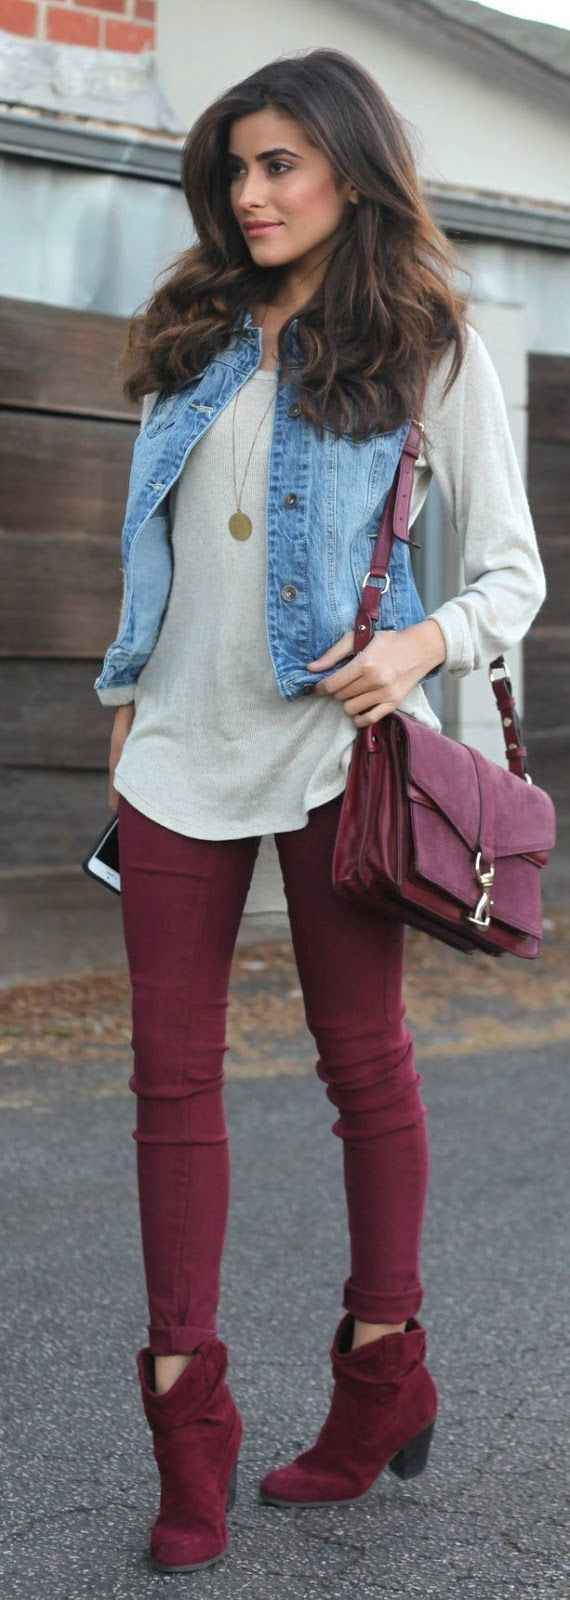 Shop this look on Lookastic: https://lookastic.com/women/looks/vest-oversized-sweater-skinny-jeans/14404   — Grey Oversized Sweater  — Gold Pendant  — Blue Denim Vest  — Burgundy Leather Crossbody Bag  — Burgundy Skinny Jeans  — Burgundy Suede Ankle Boots